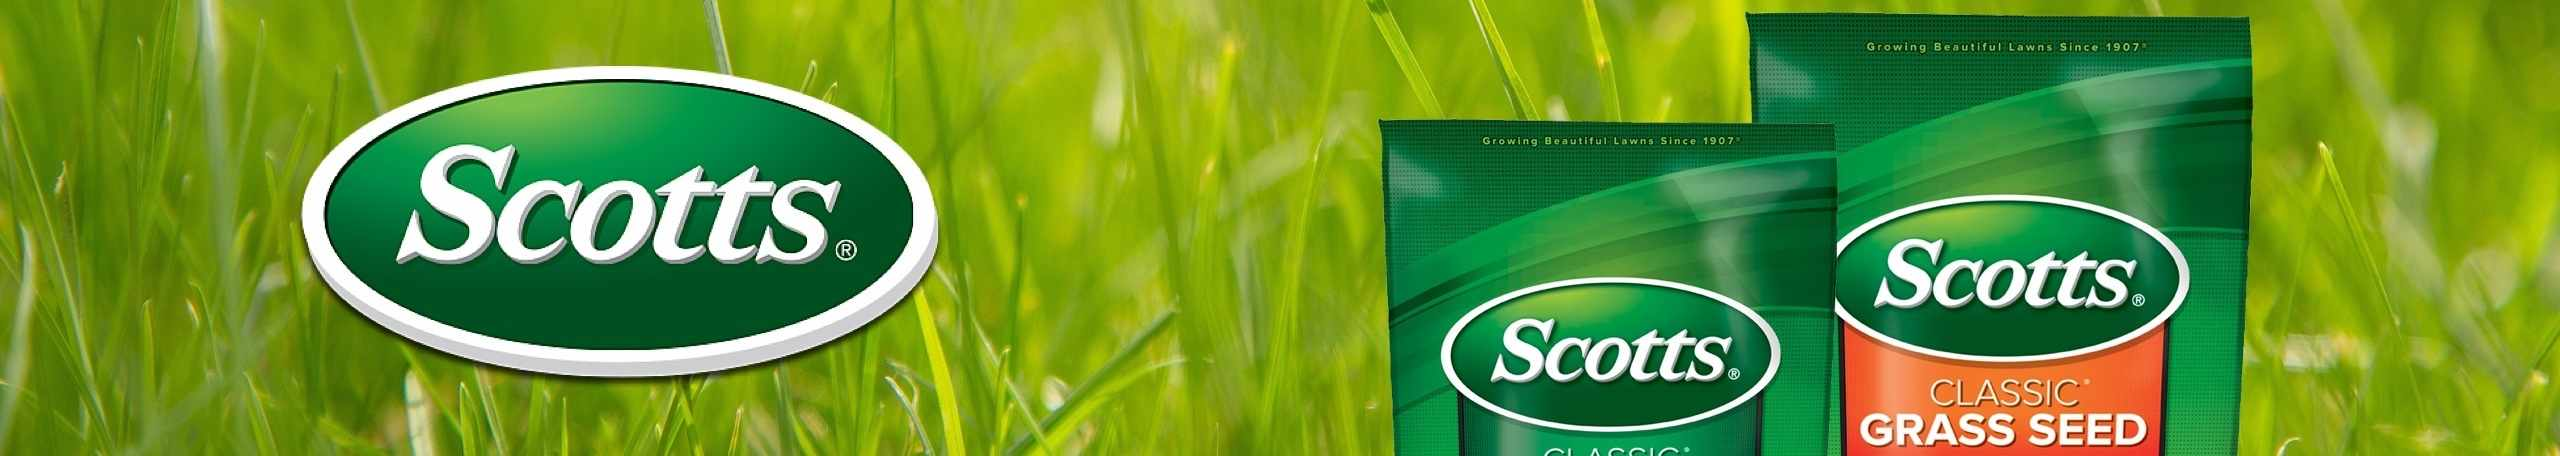 Scotts Lawn Care products on green grass background